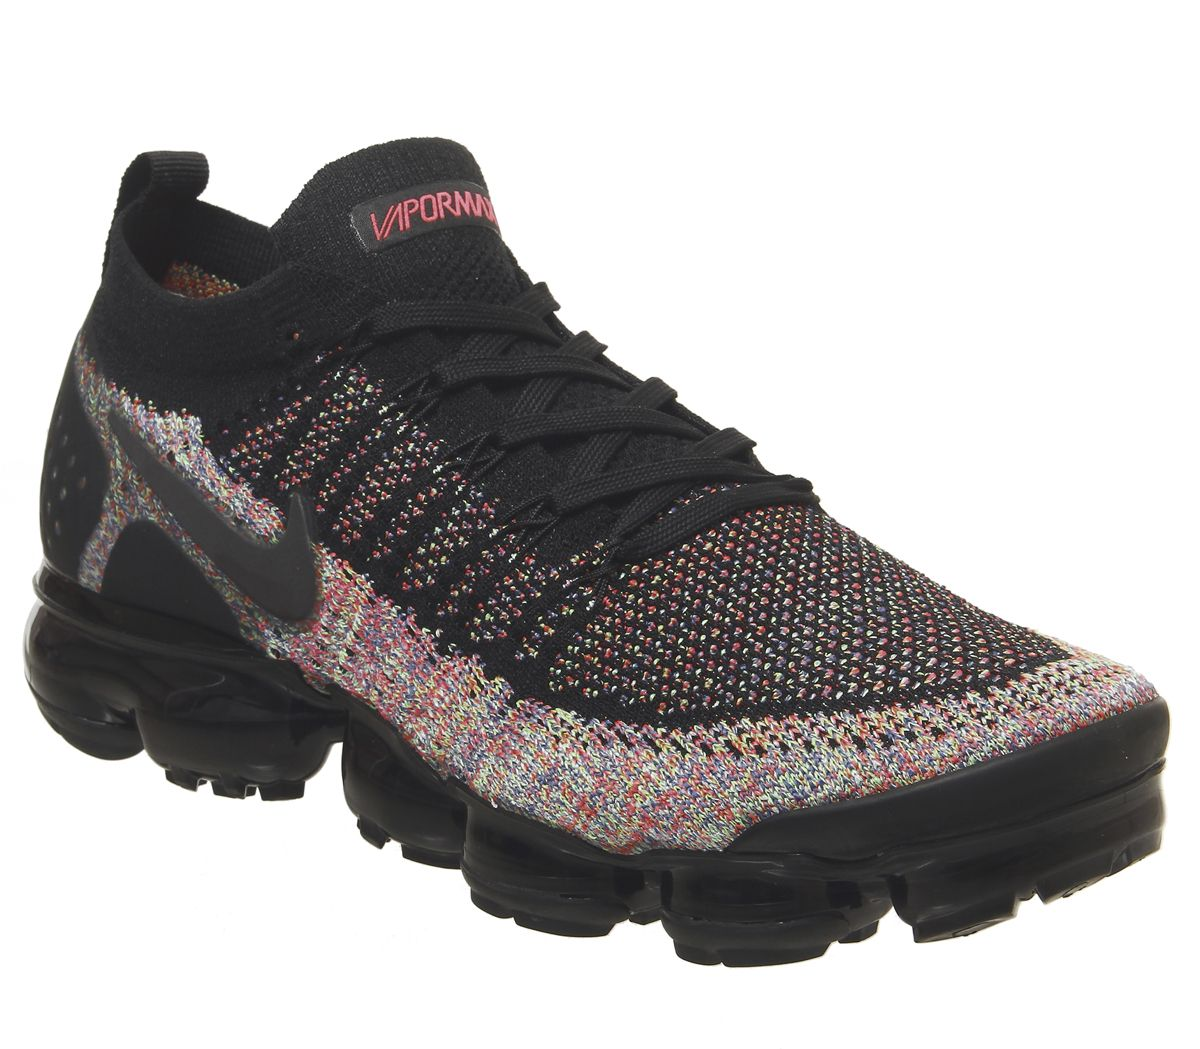 brand new be4c8 efa97 Air Vapormax Flyknit 2 Trainers